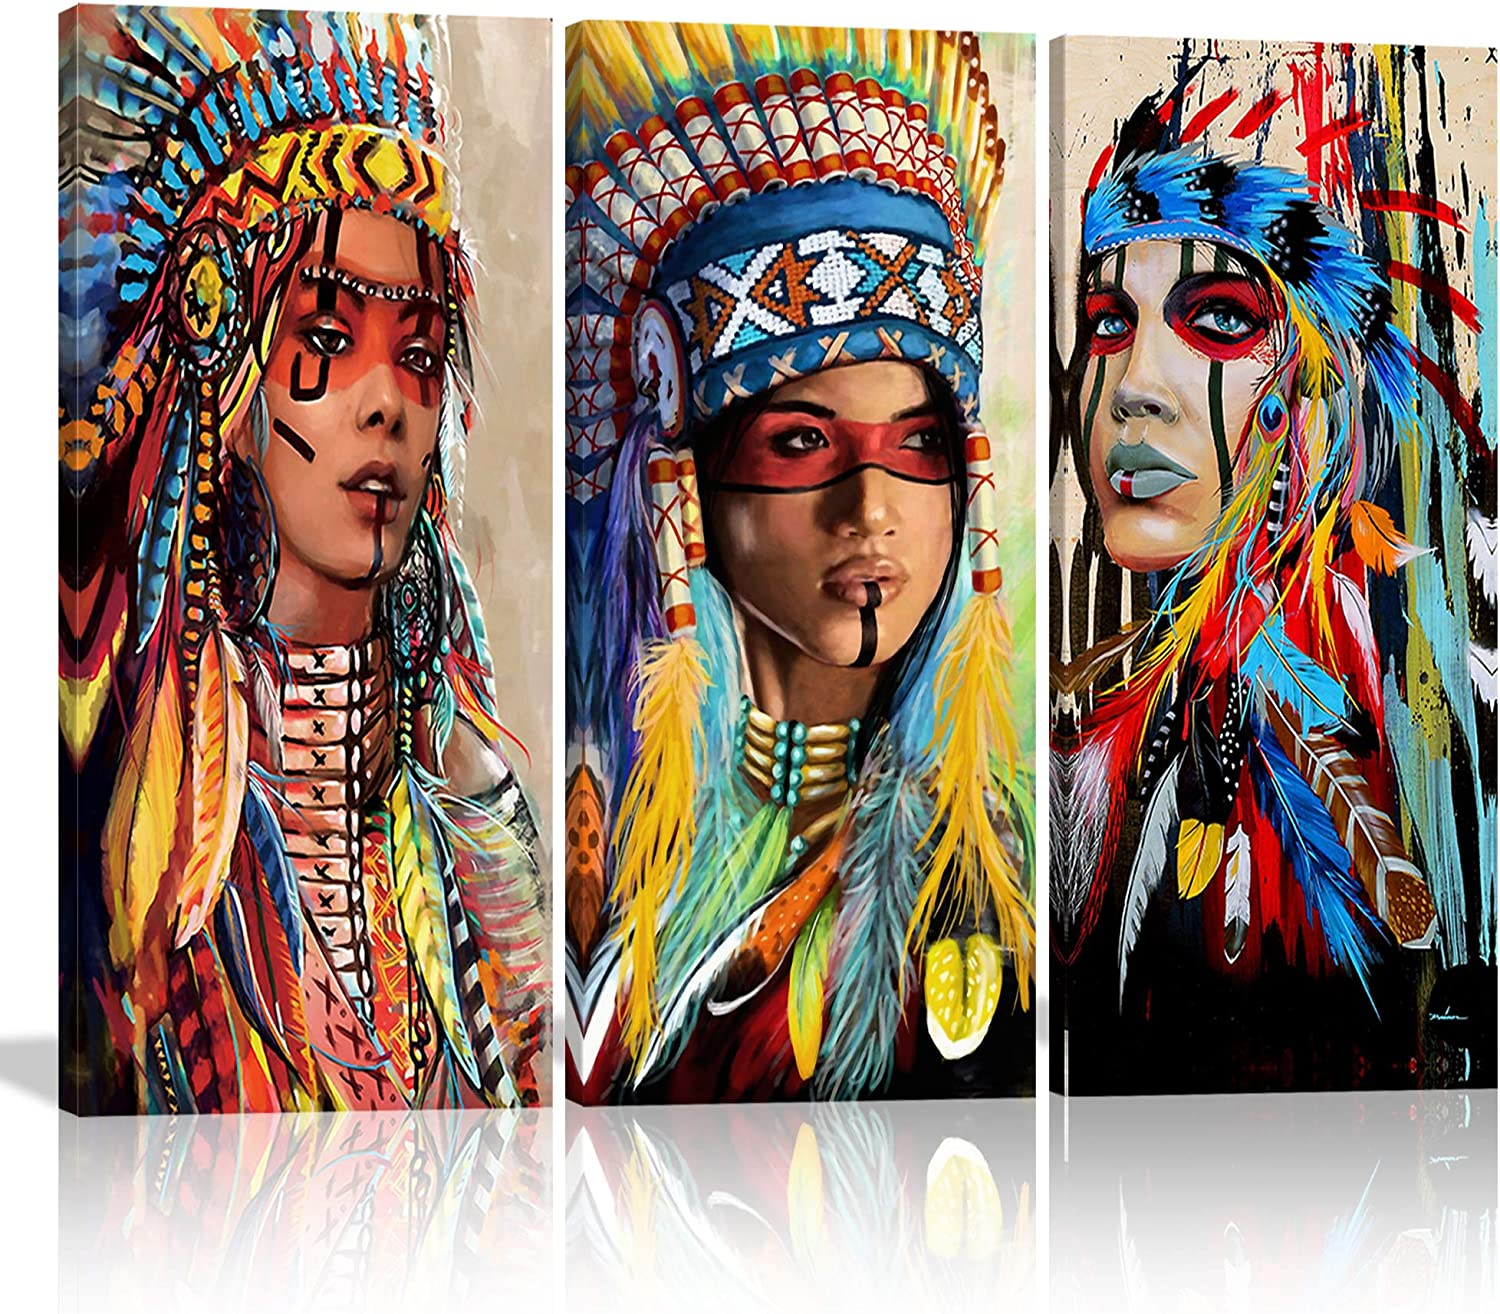 Native American Indian Girl Wall Art Canvas Painting Women Chief with Colorful Feathers Ethnologic Accessories Modern Poster Picture Verical Artwork